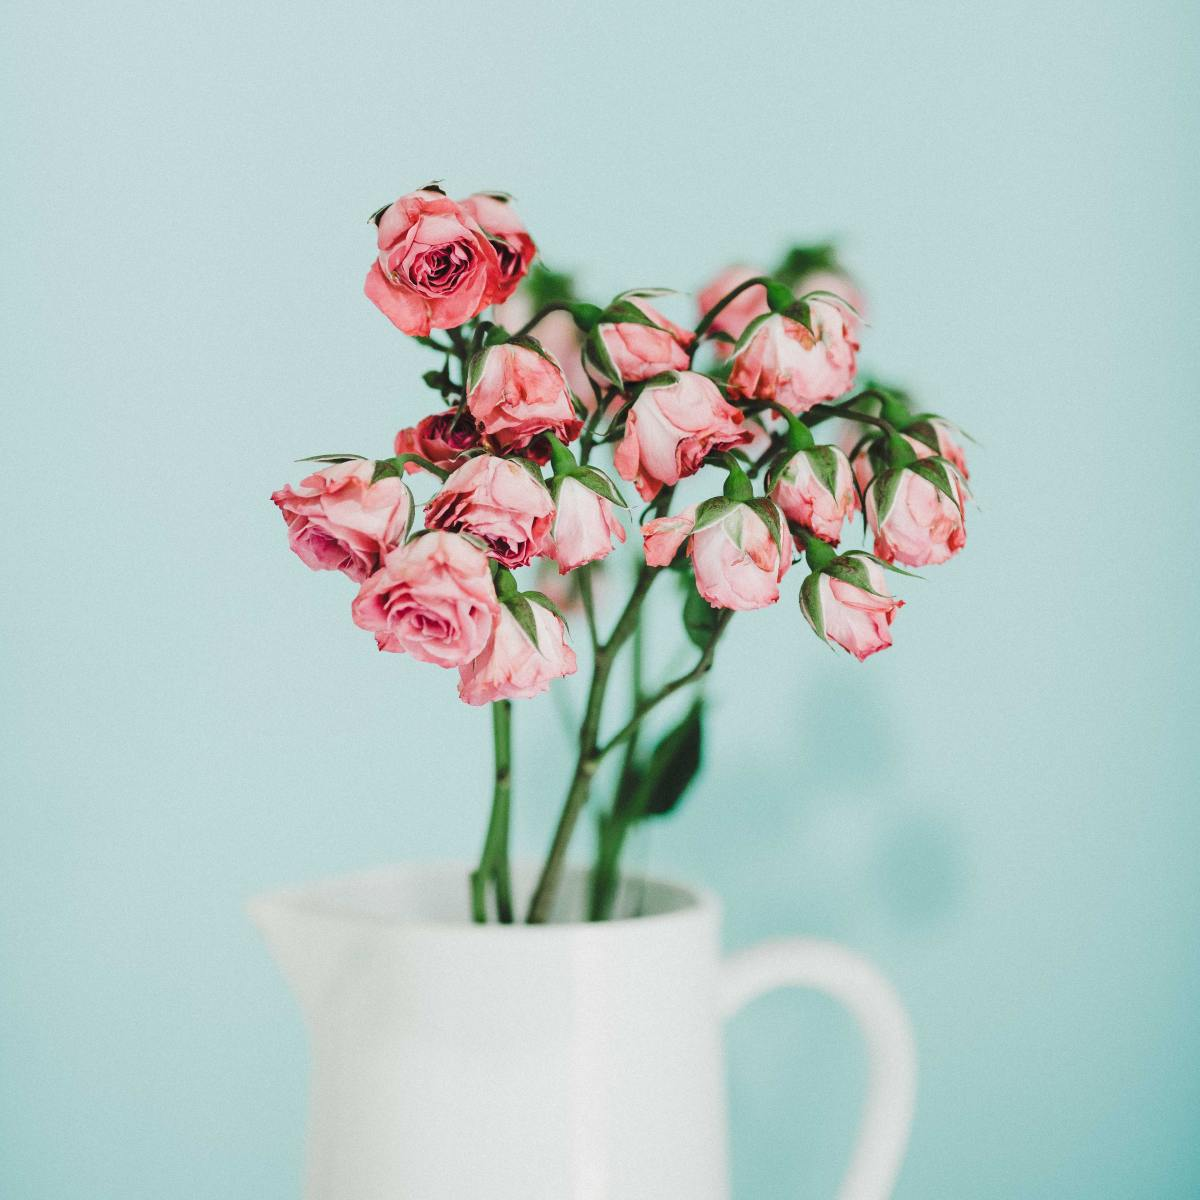 Which flowers last the longest when cut and kept in a vase?